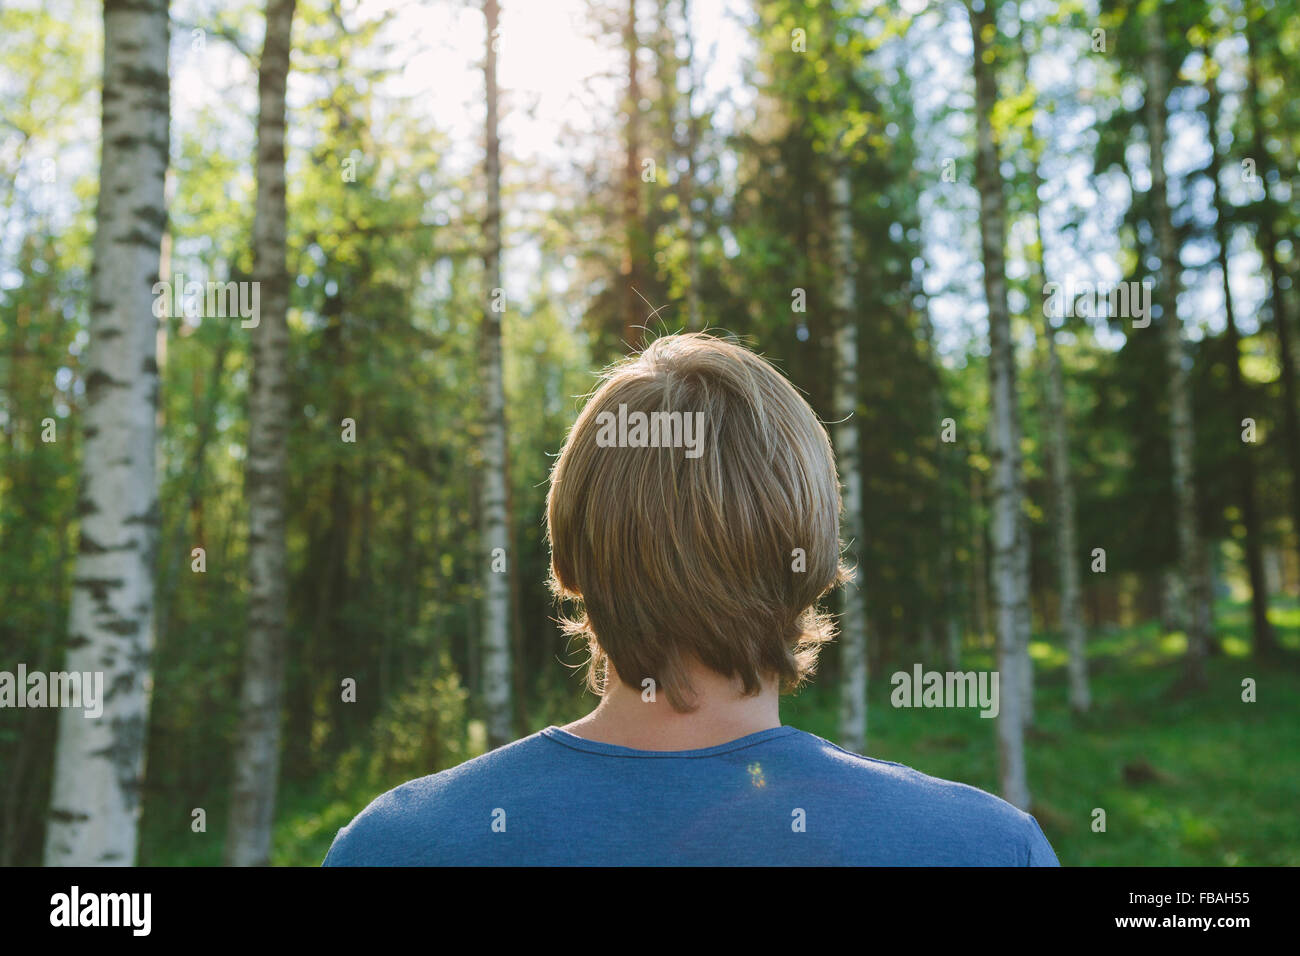 Finland, Mellersta Finland, Jyvaskyla, Saakoski, Young man looking at forest - Stock Image